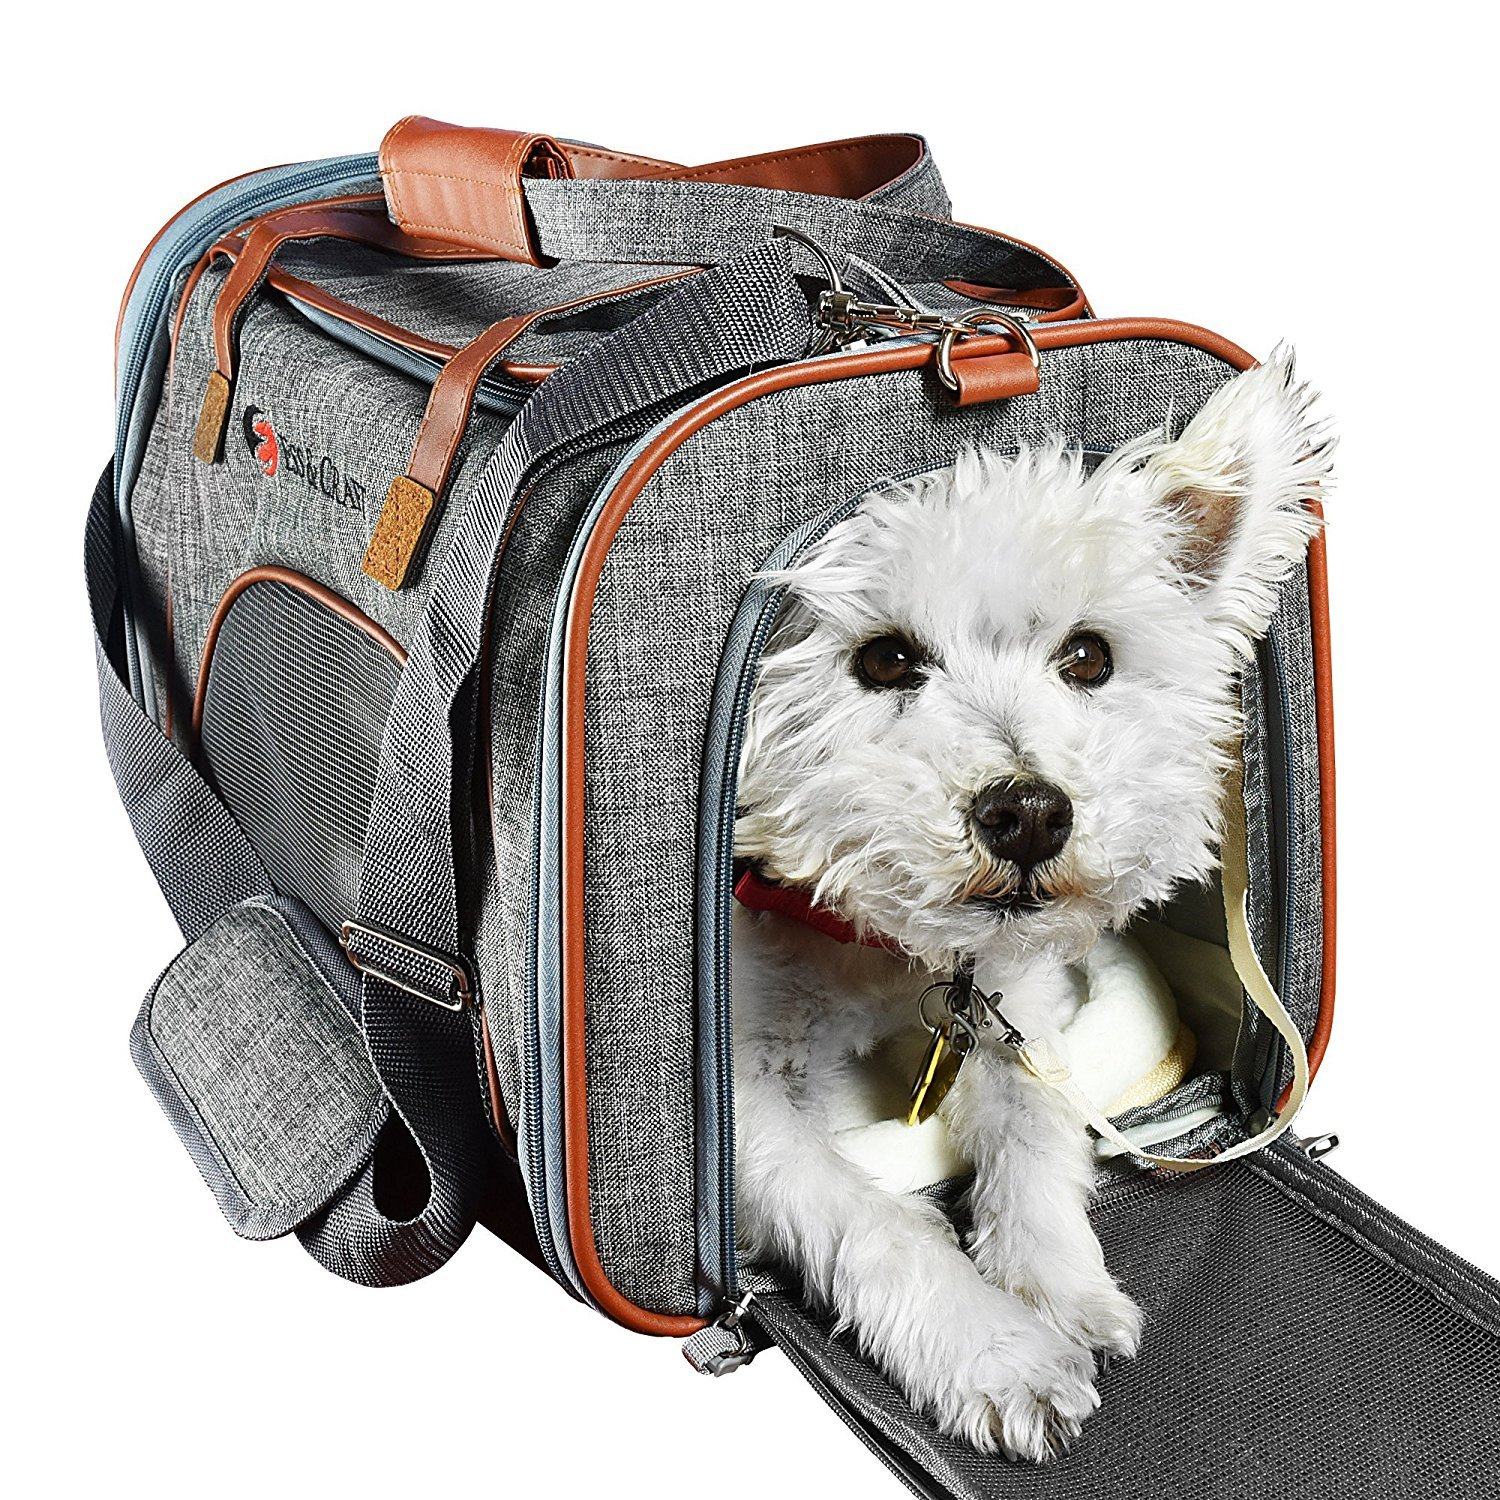 E Ess & Craft Ess And Craft Pet Carrier Airline Approved | Side Loaded Travel Bag With Sturdy Bottom & Fleece Cushion | Ventilated Pouch With Faux Leather Top Handle & Zipper Locks | For Dogs Cats Small Pets